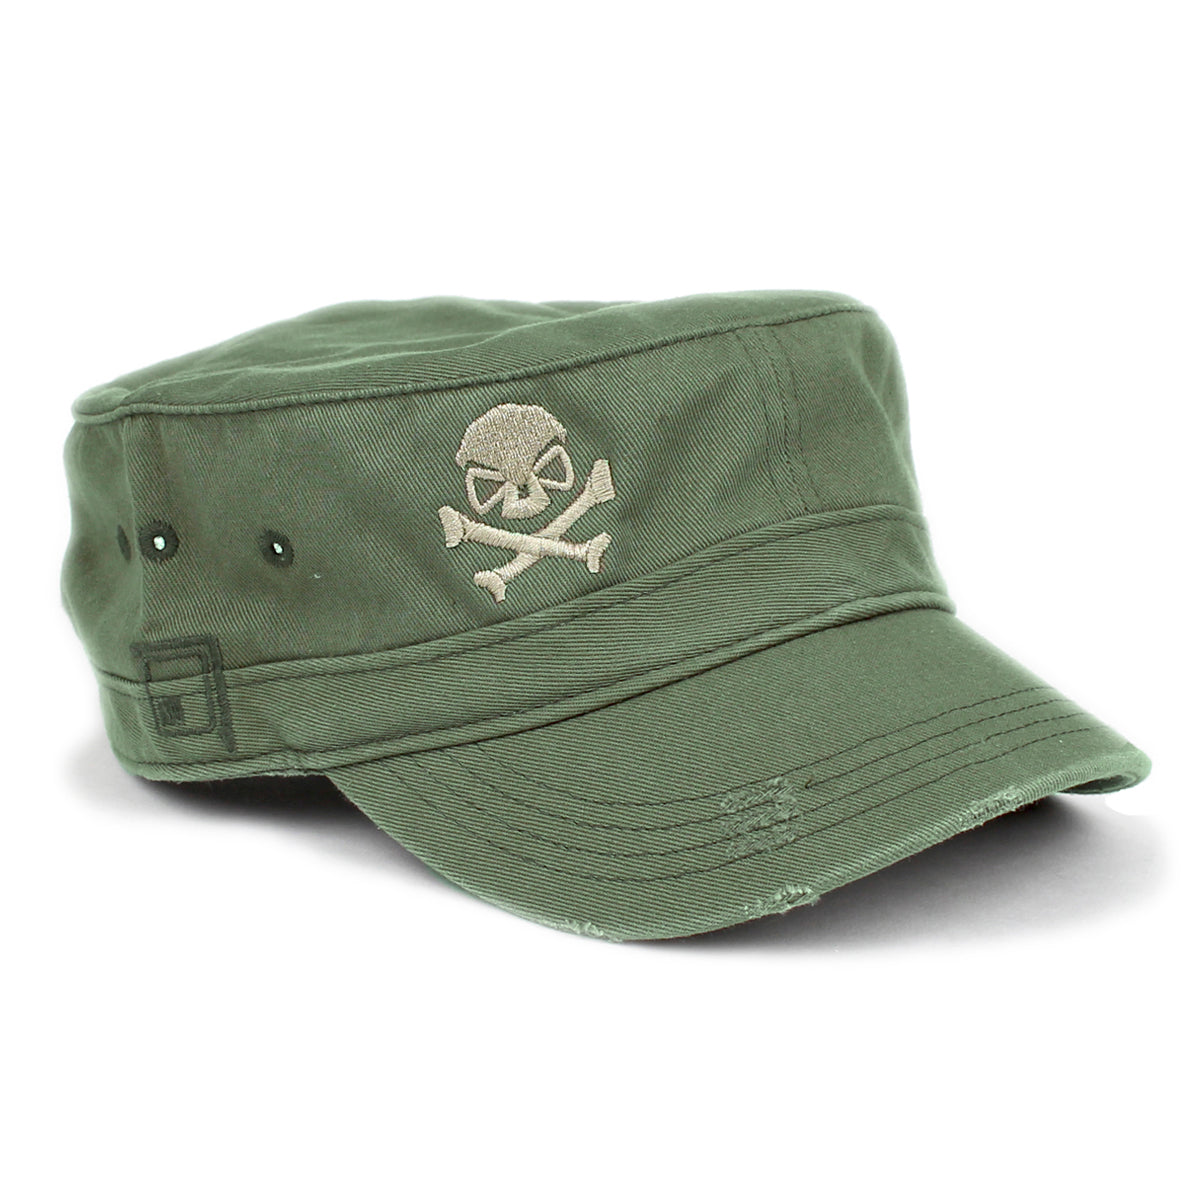 Cadet Cap - Olive/Pewter - Hats - Pipe Hitters Union